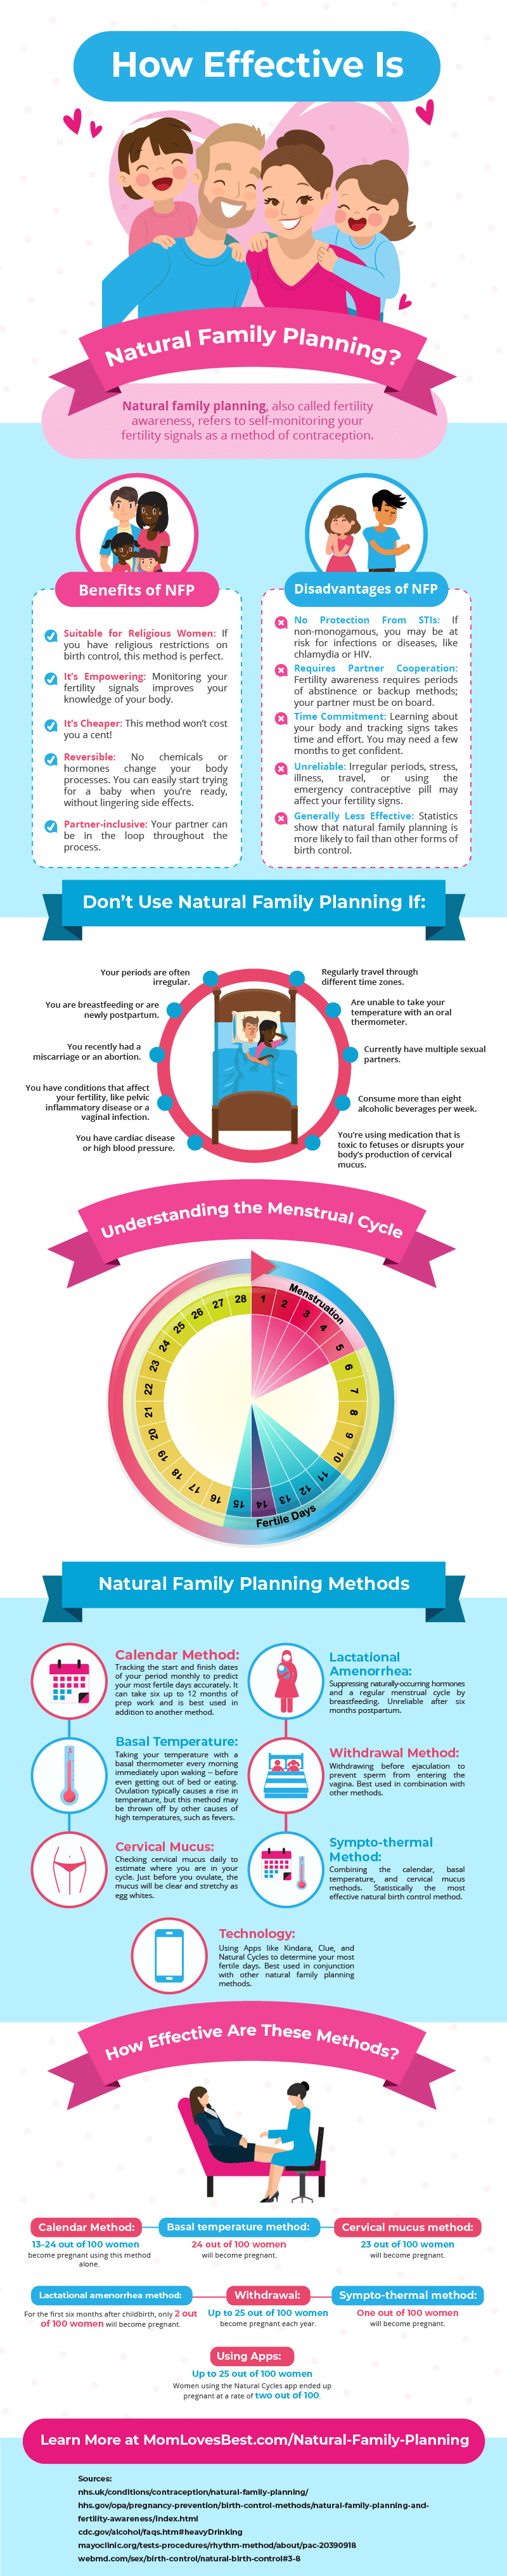 Natural Family Planning Infographic